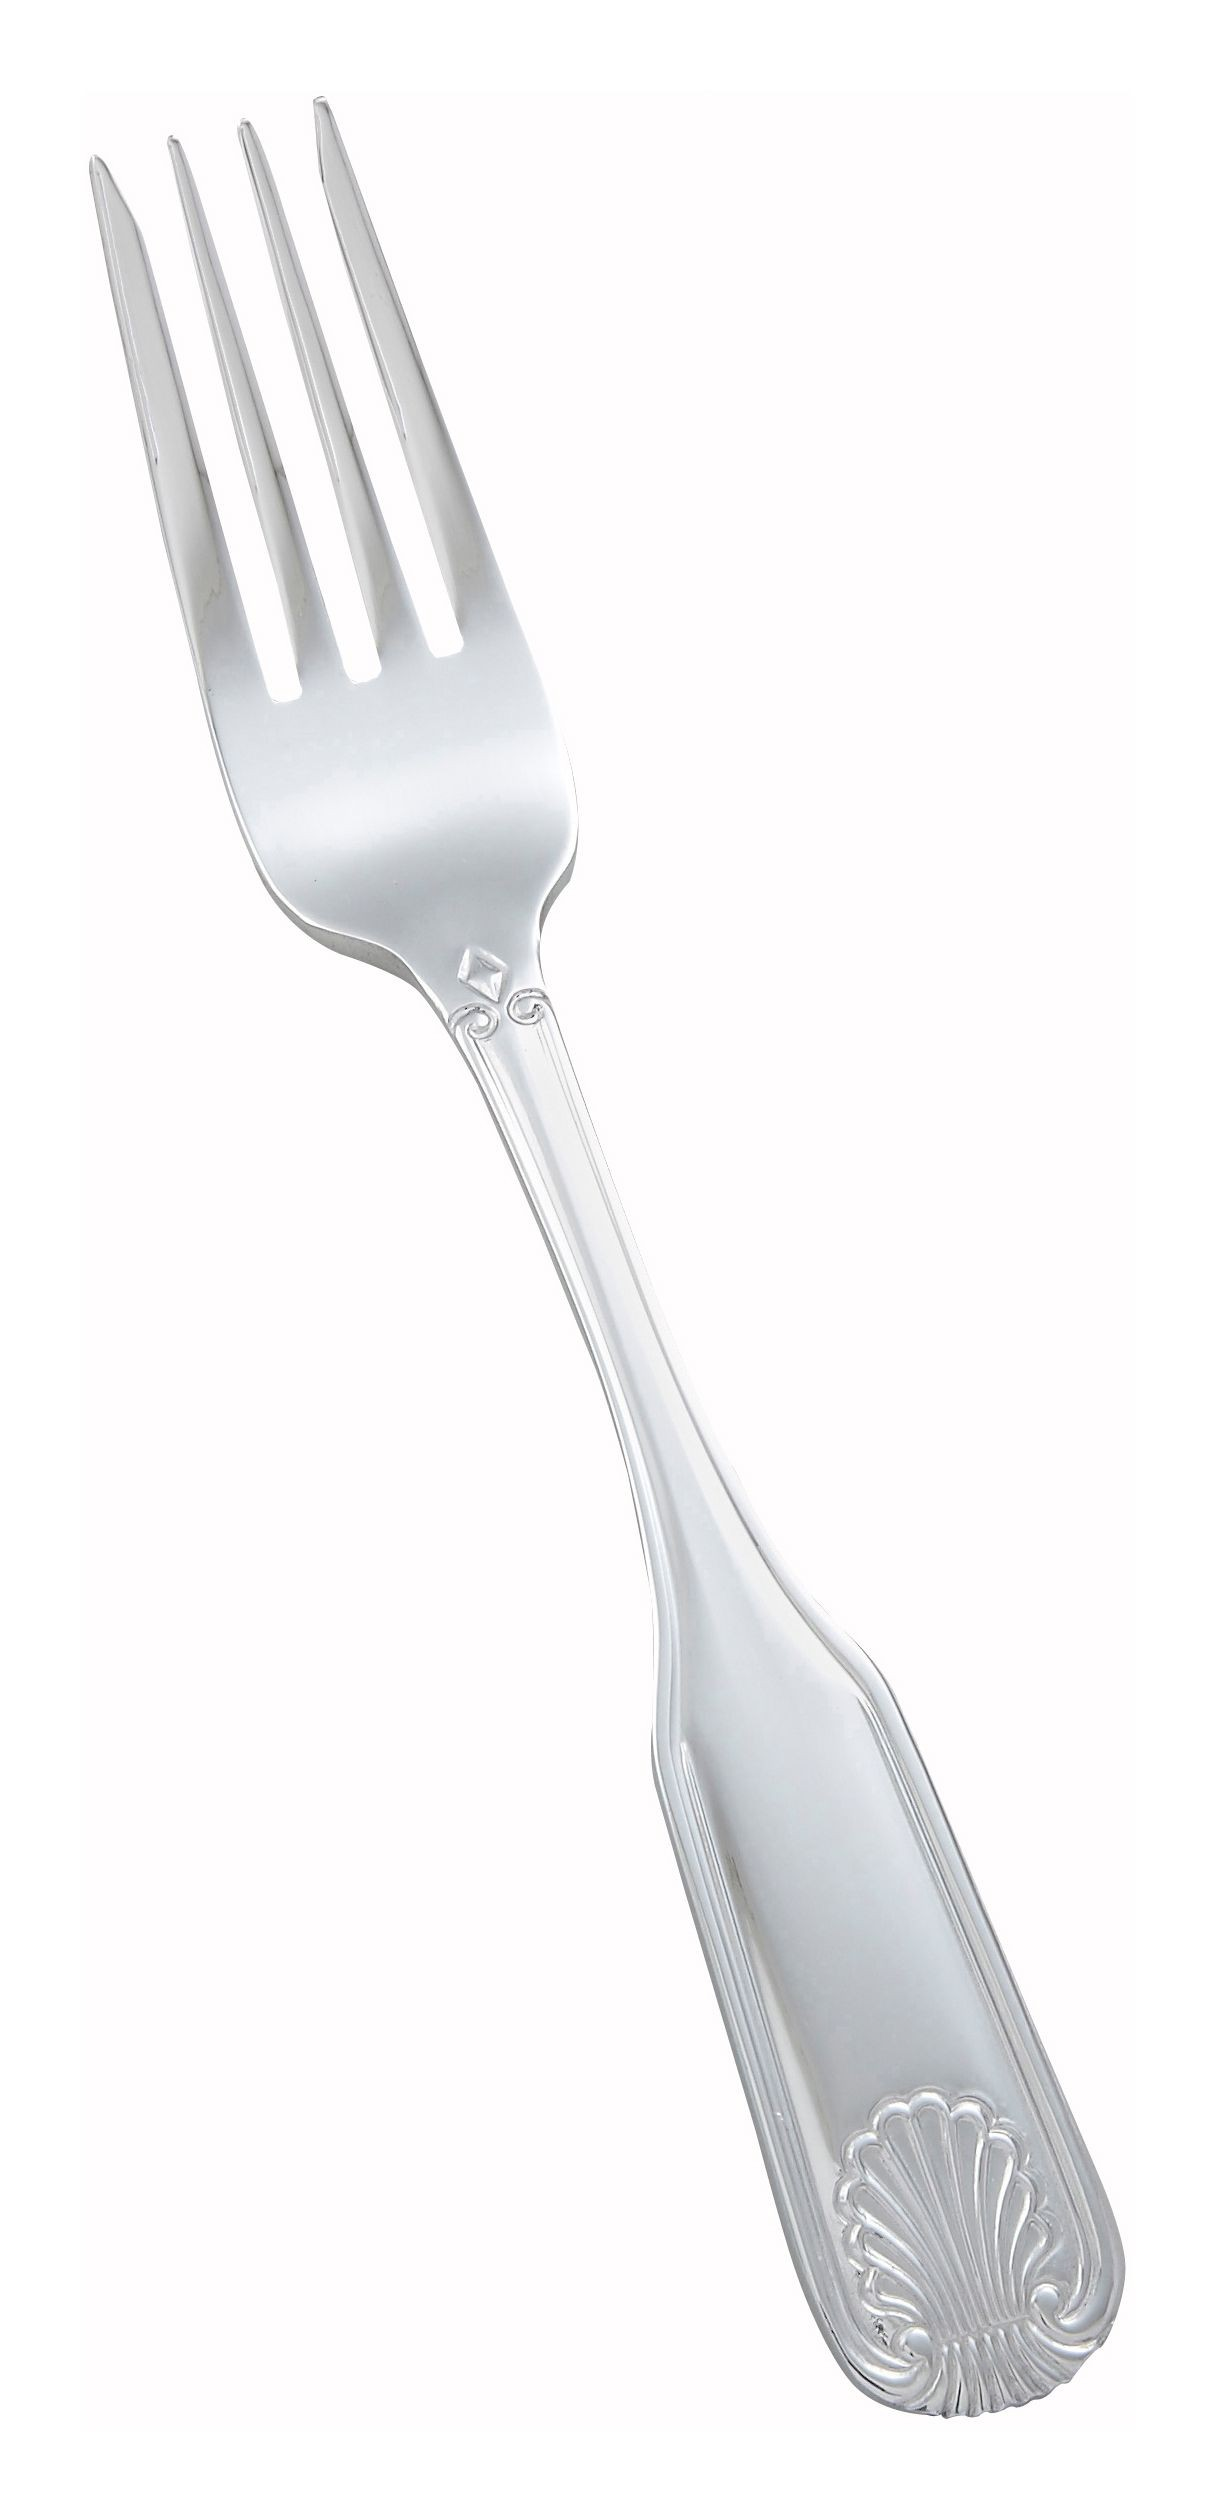 Toulouse Heavy Mirror Finish Stainless Steel Salad Fork (12/Pack)